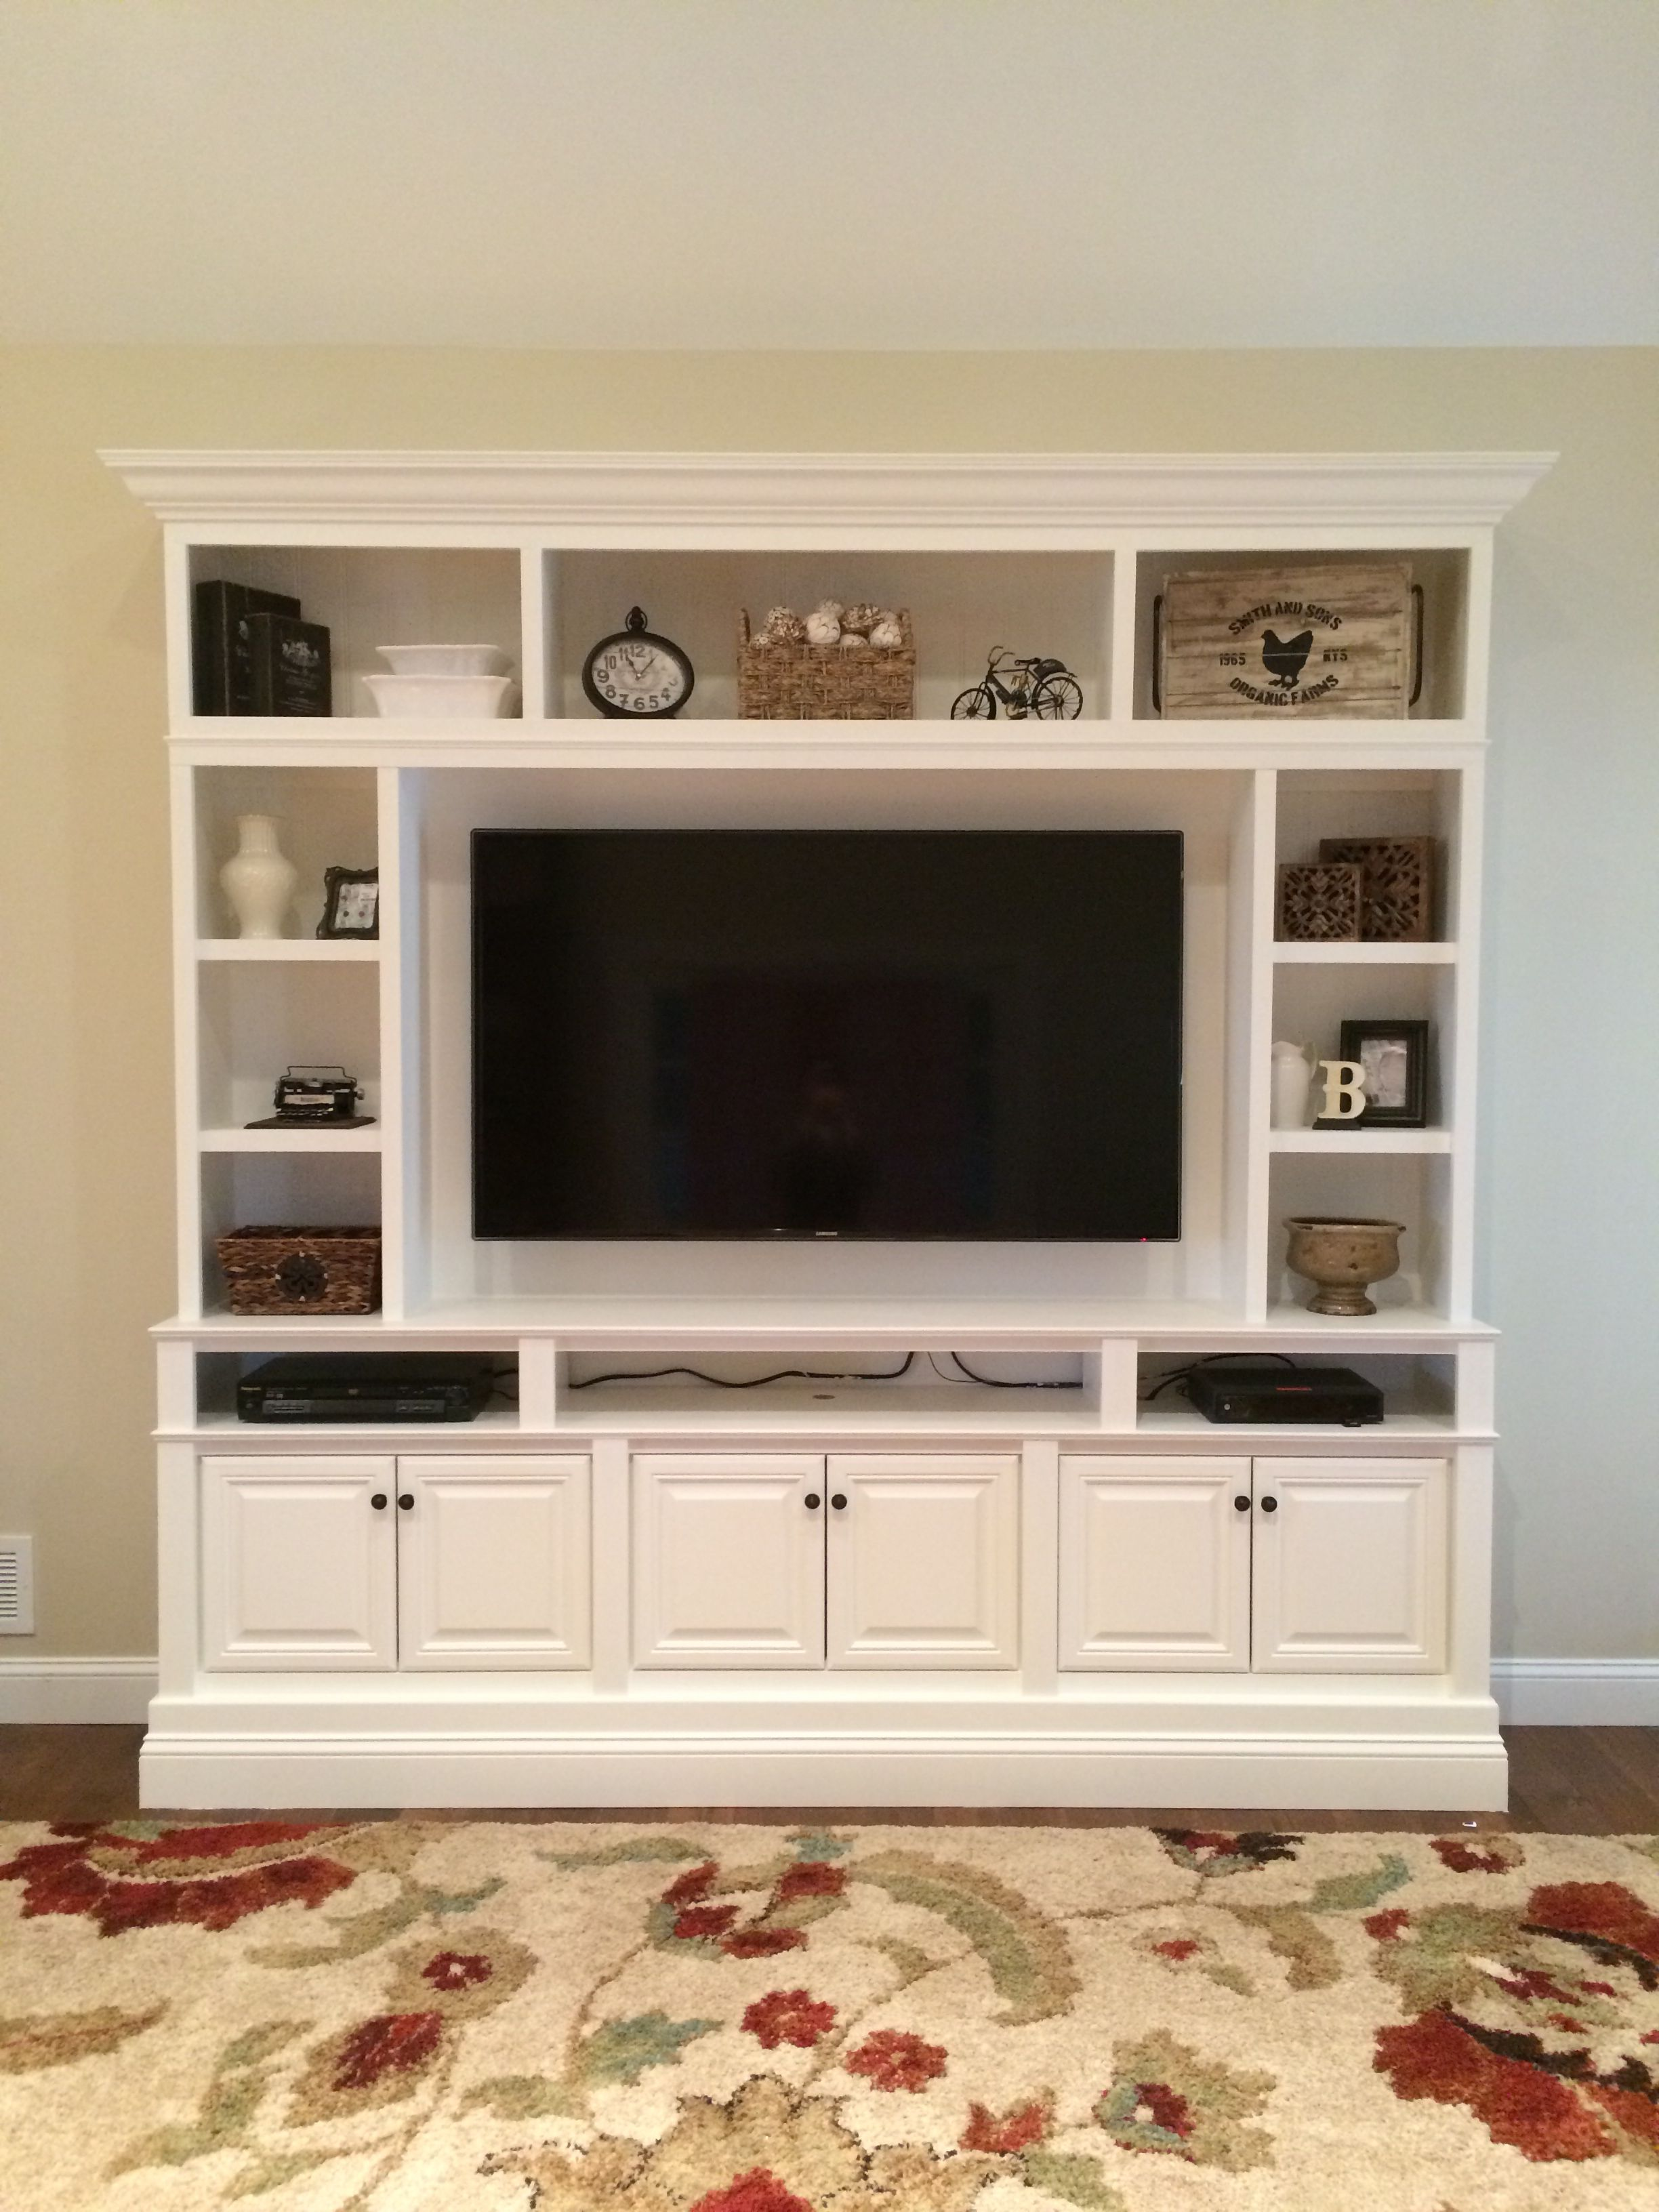 diy built in entertainment center using kitchen cabinets